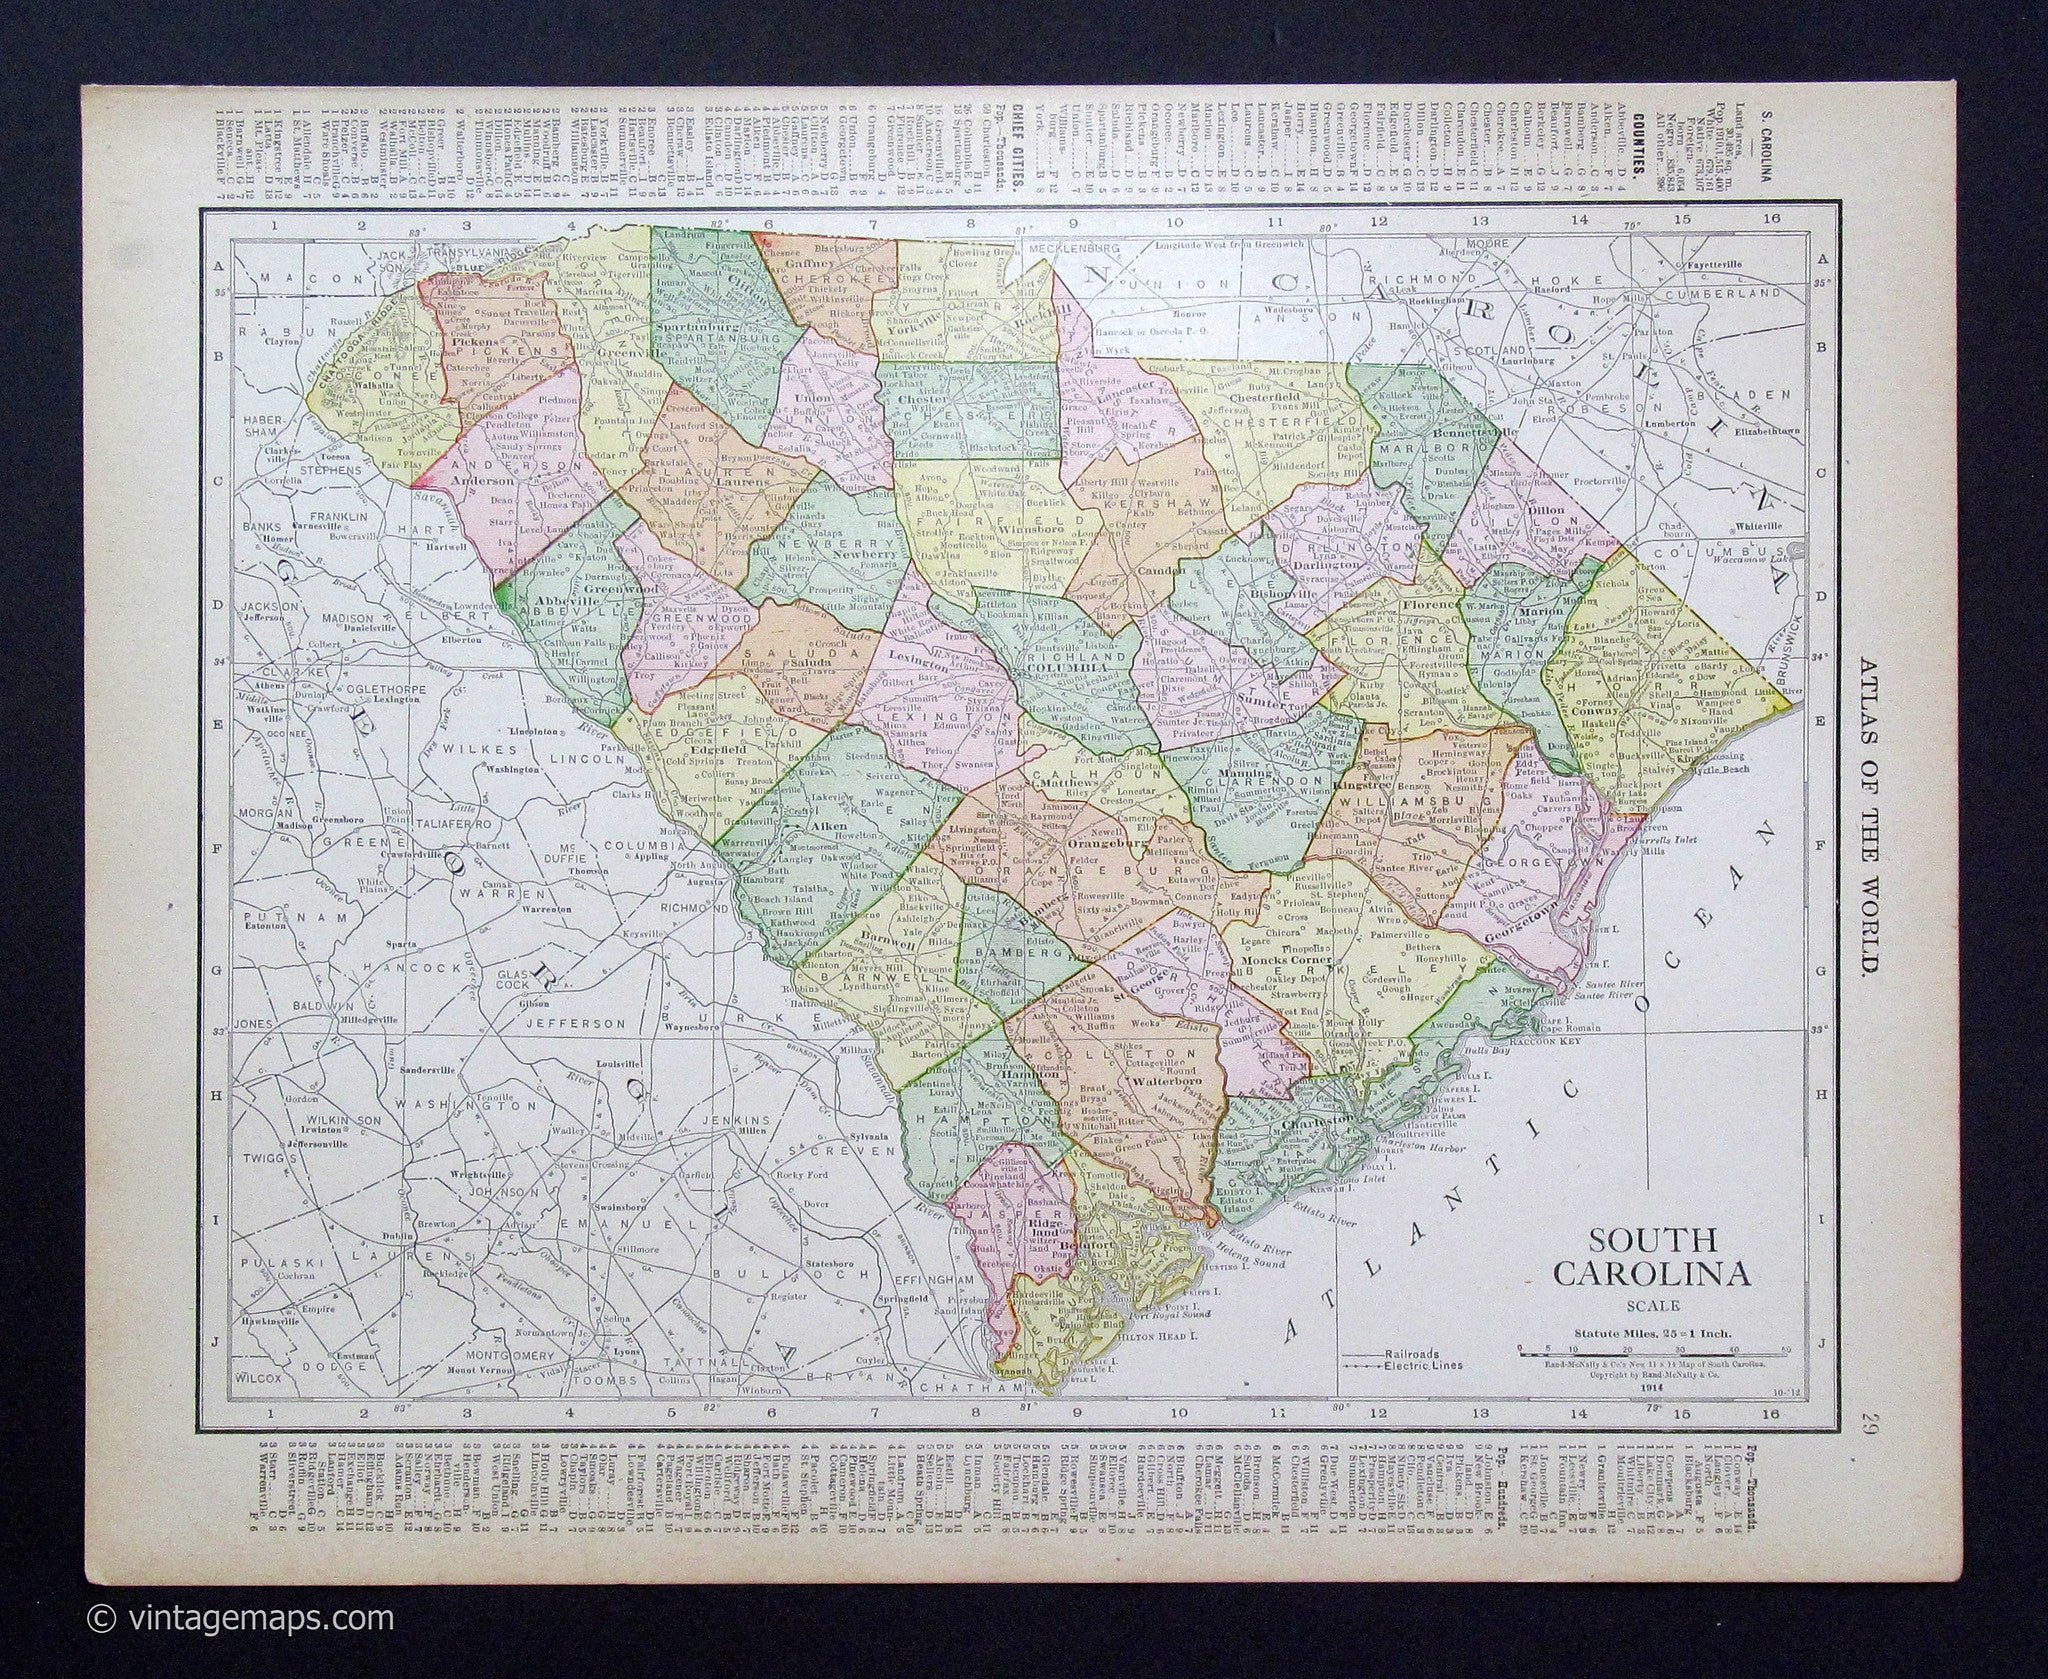 South Carolina State Map With Counties And Cities.South Carolina 1914 Vintage Maps